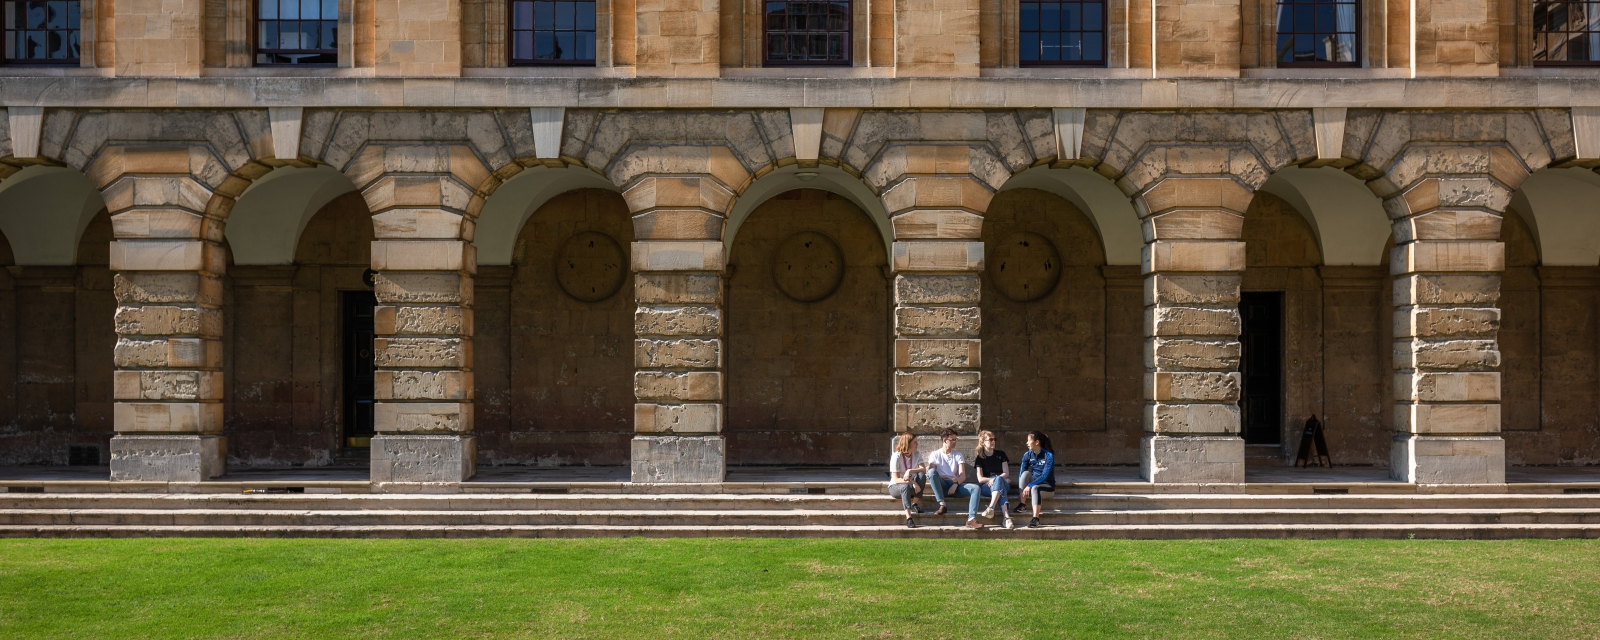 students sitting in the cloisters